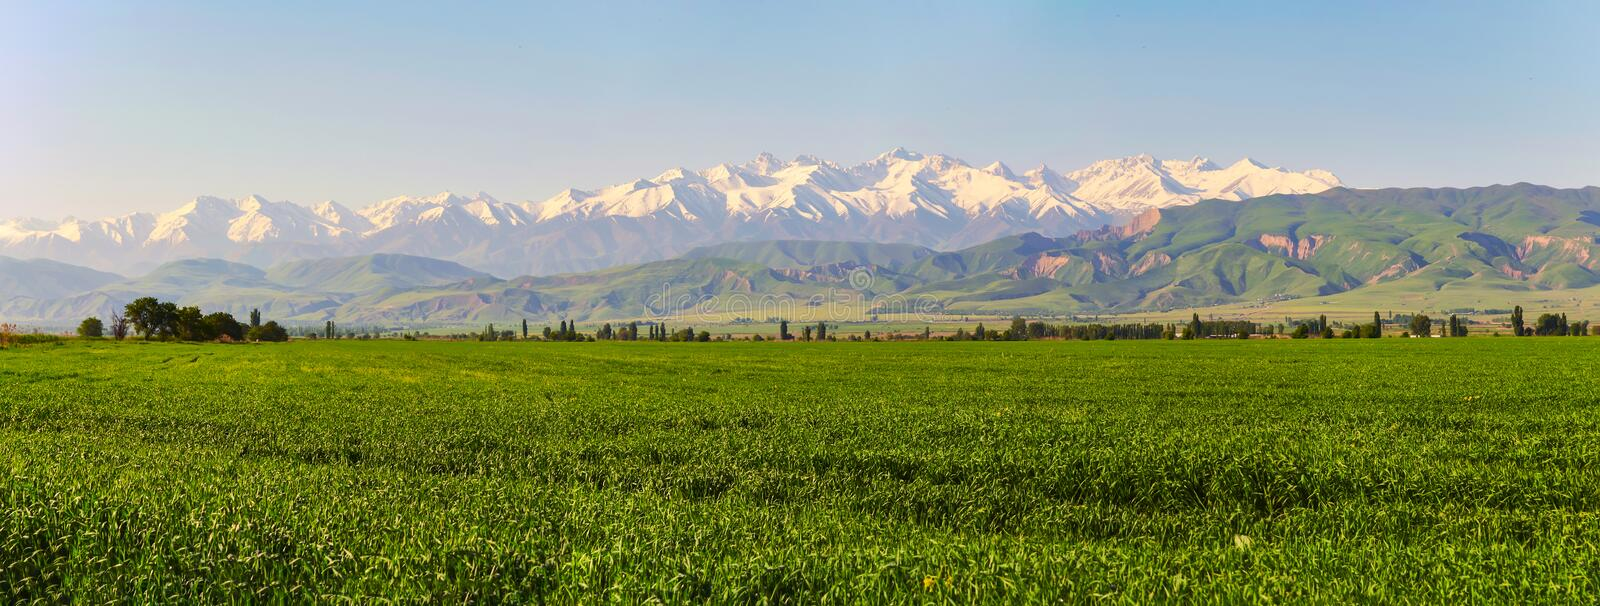 Mountain landscape. Fresh green meadows at sunrise in springtime, mountains lit by the rising sun stock image